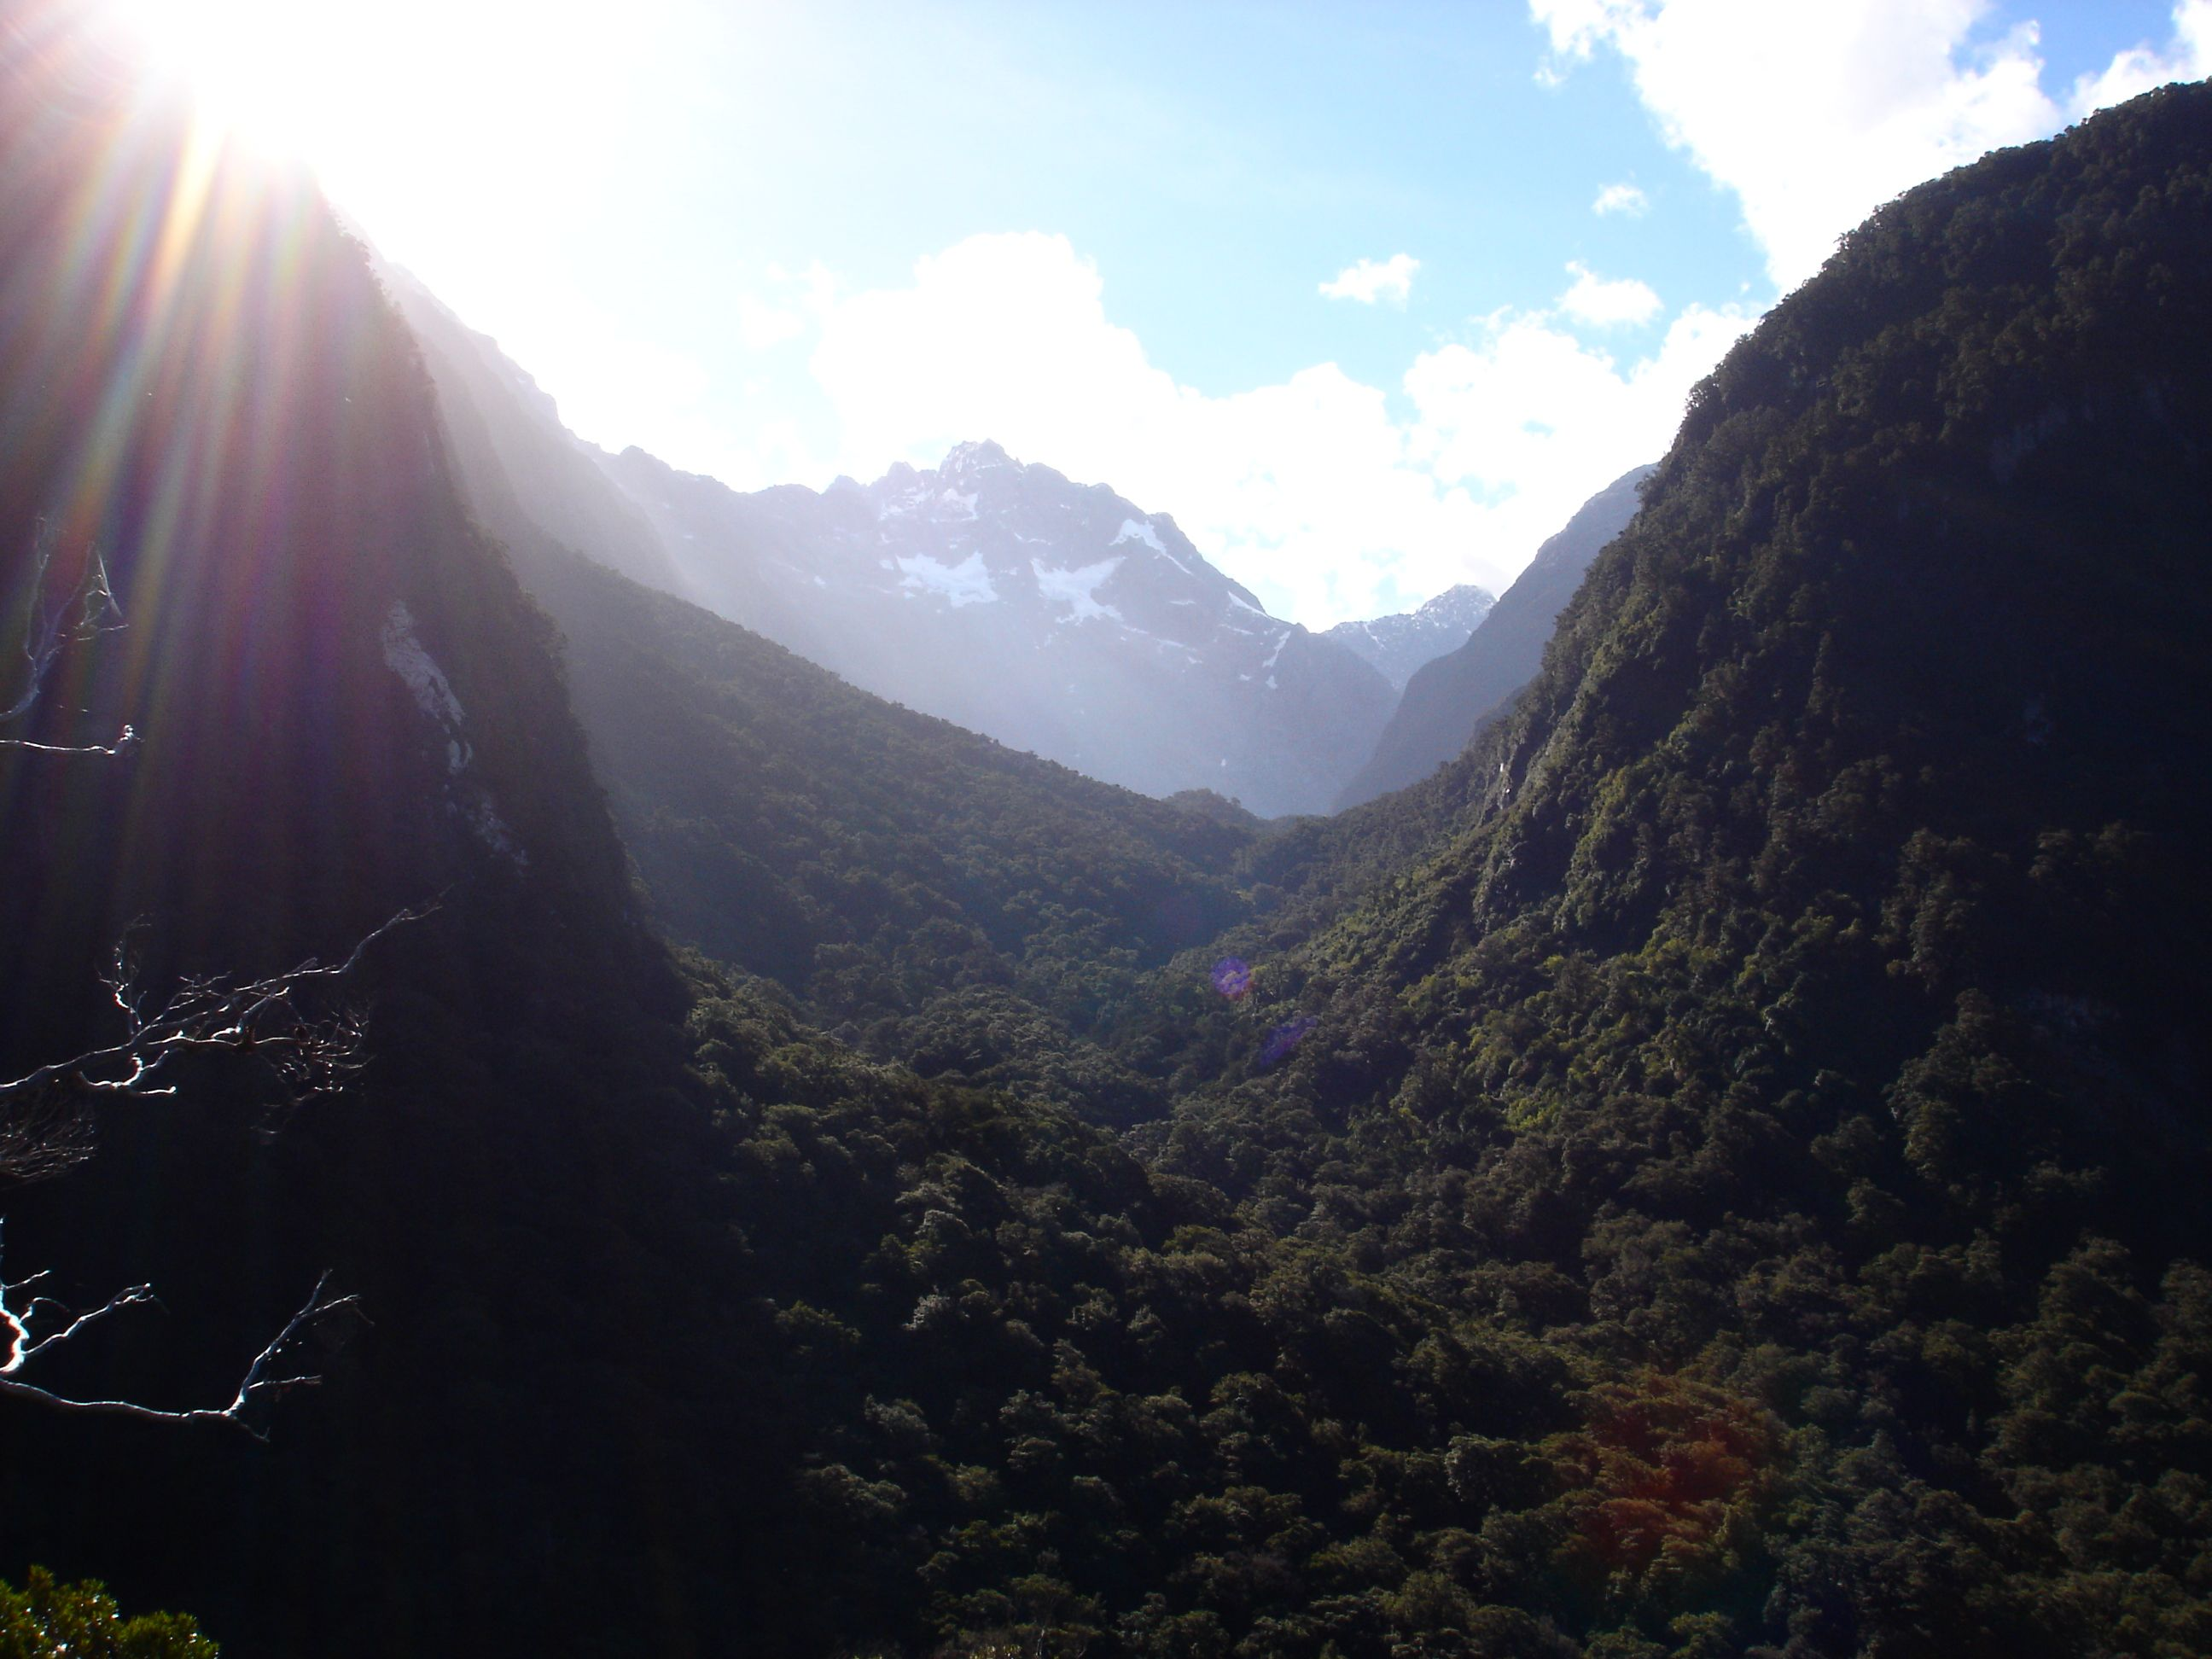 Beutiful Mountains close to the Homer Tunnel on the Milford Sound Highway, New Zealand